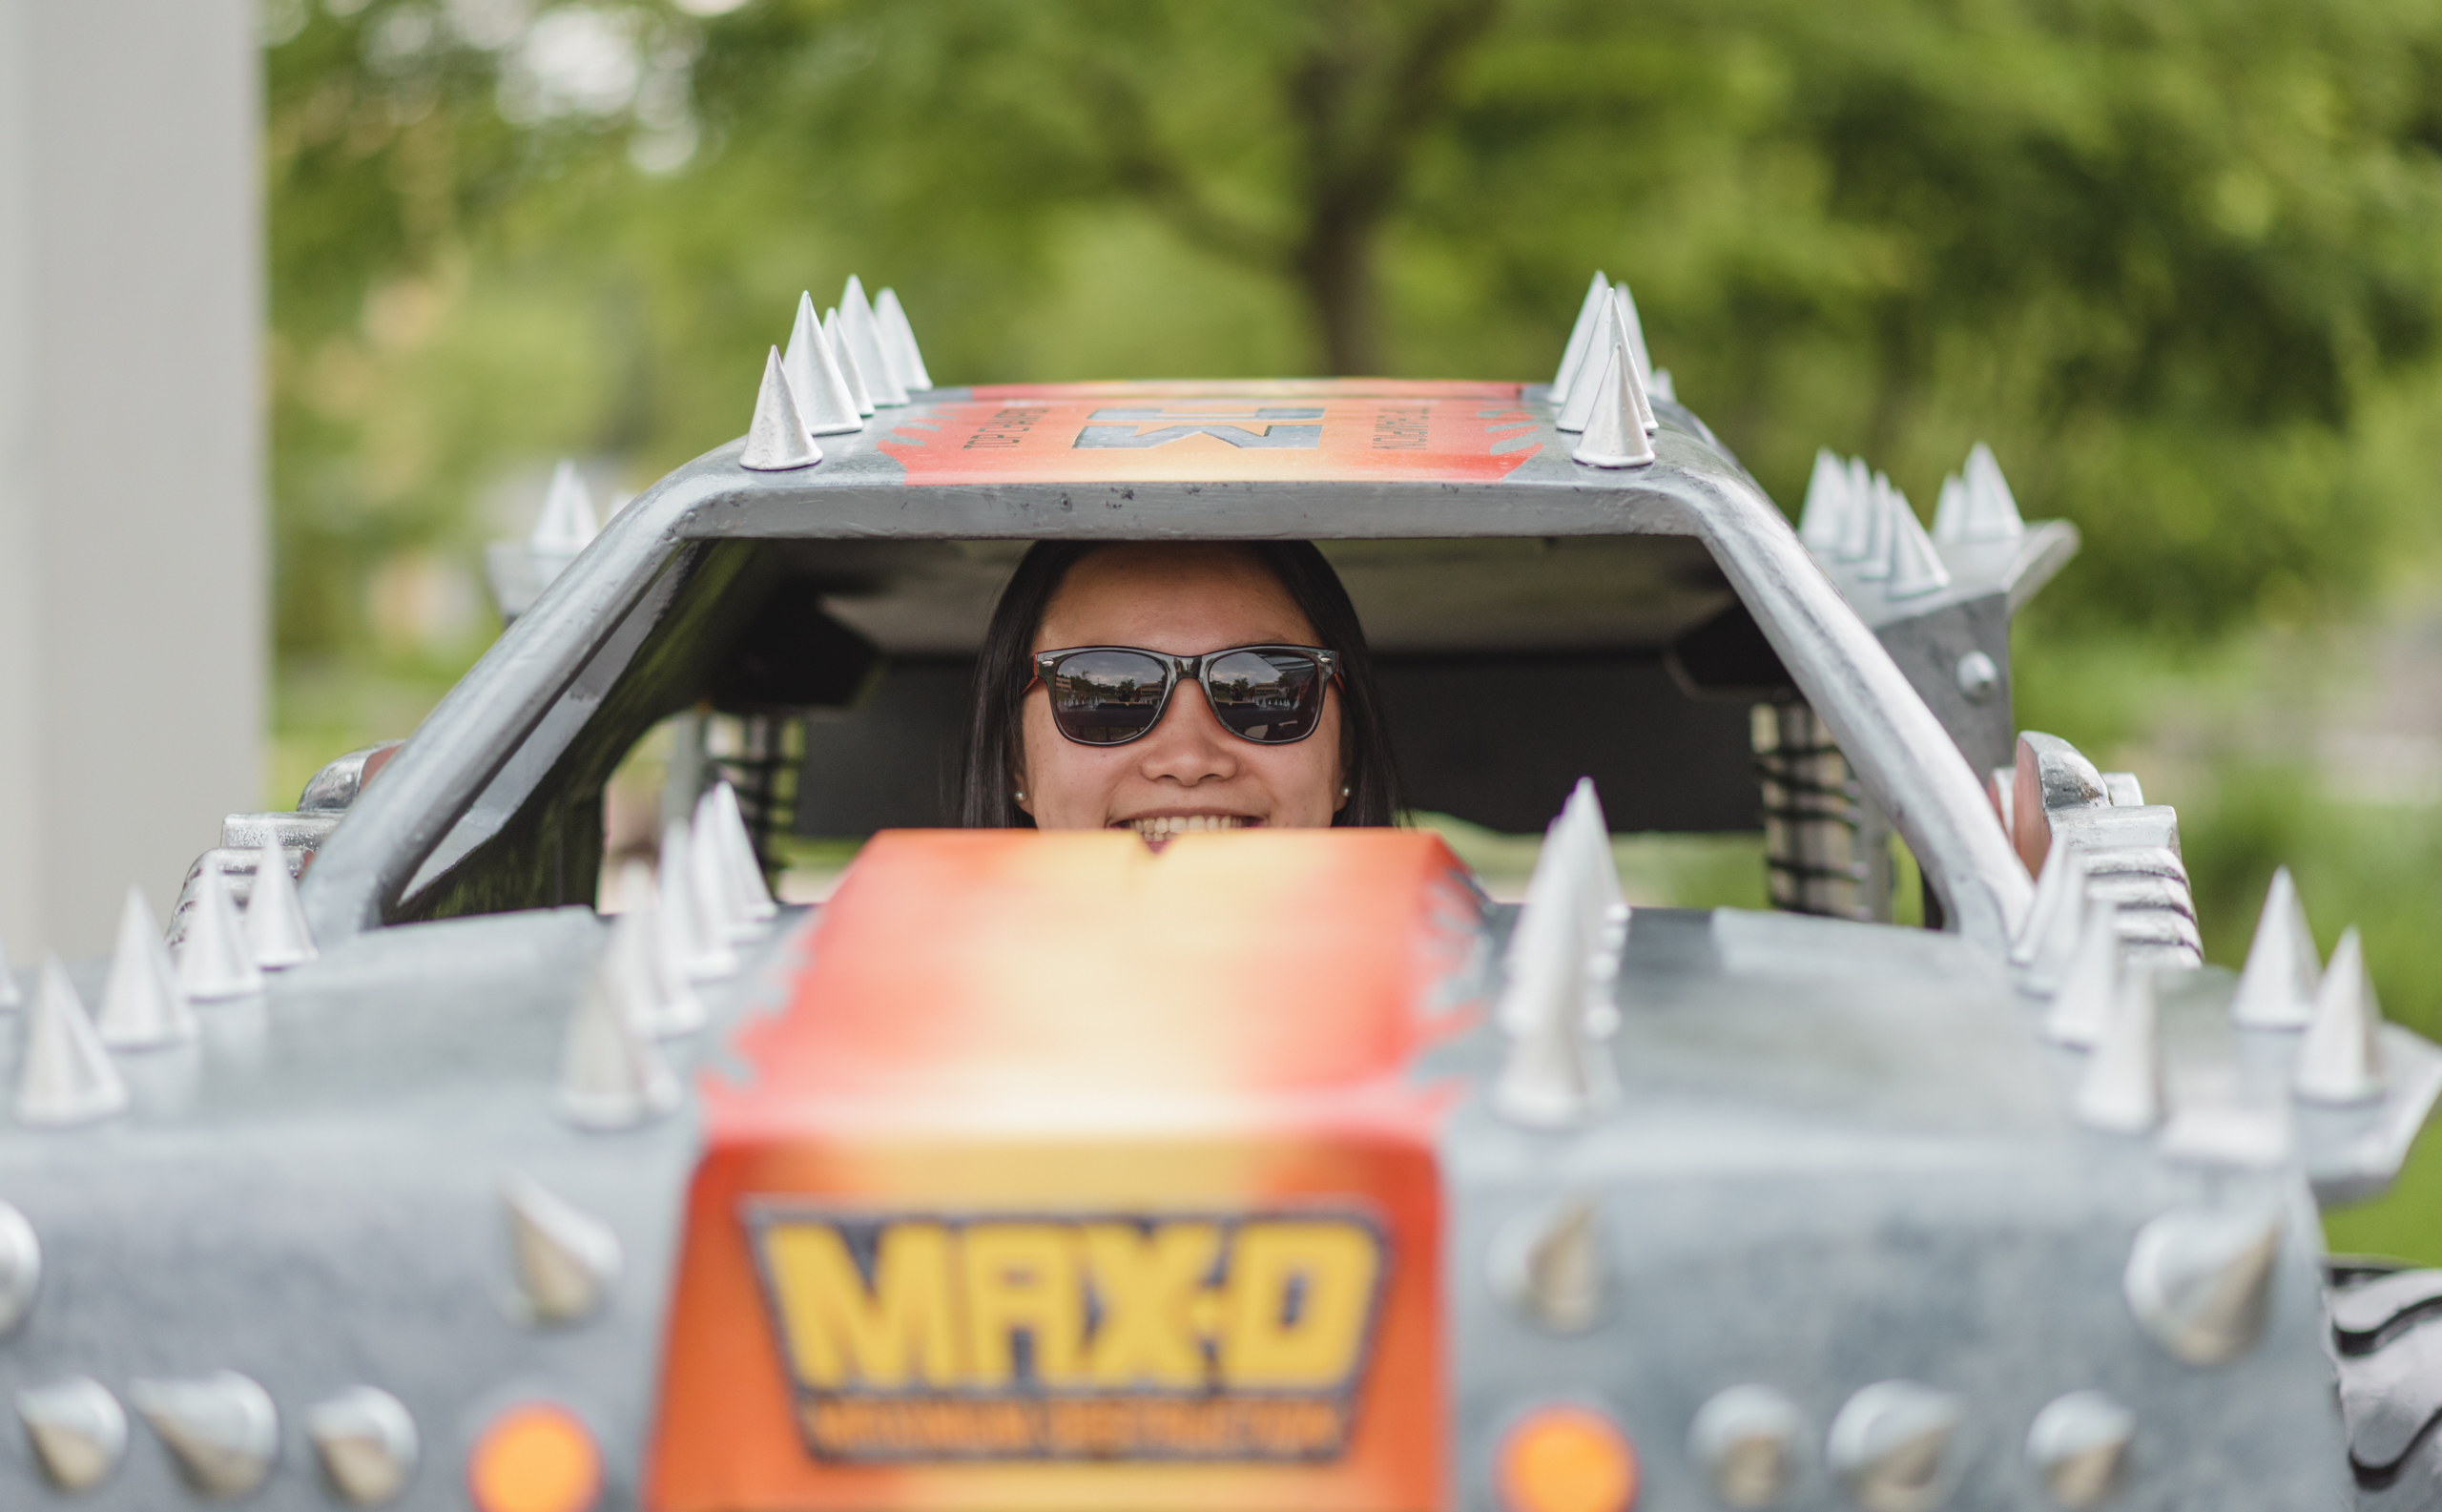 Team leader Chinloo cruising in the mini-Max-D